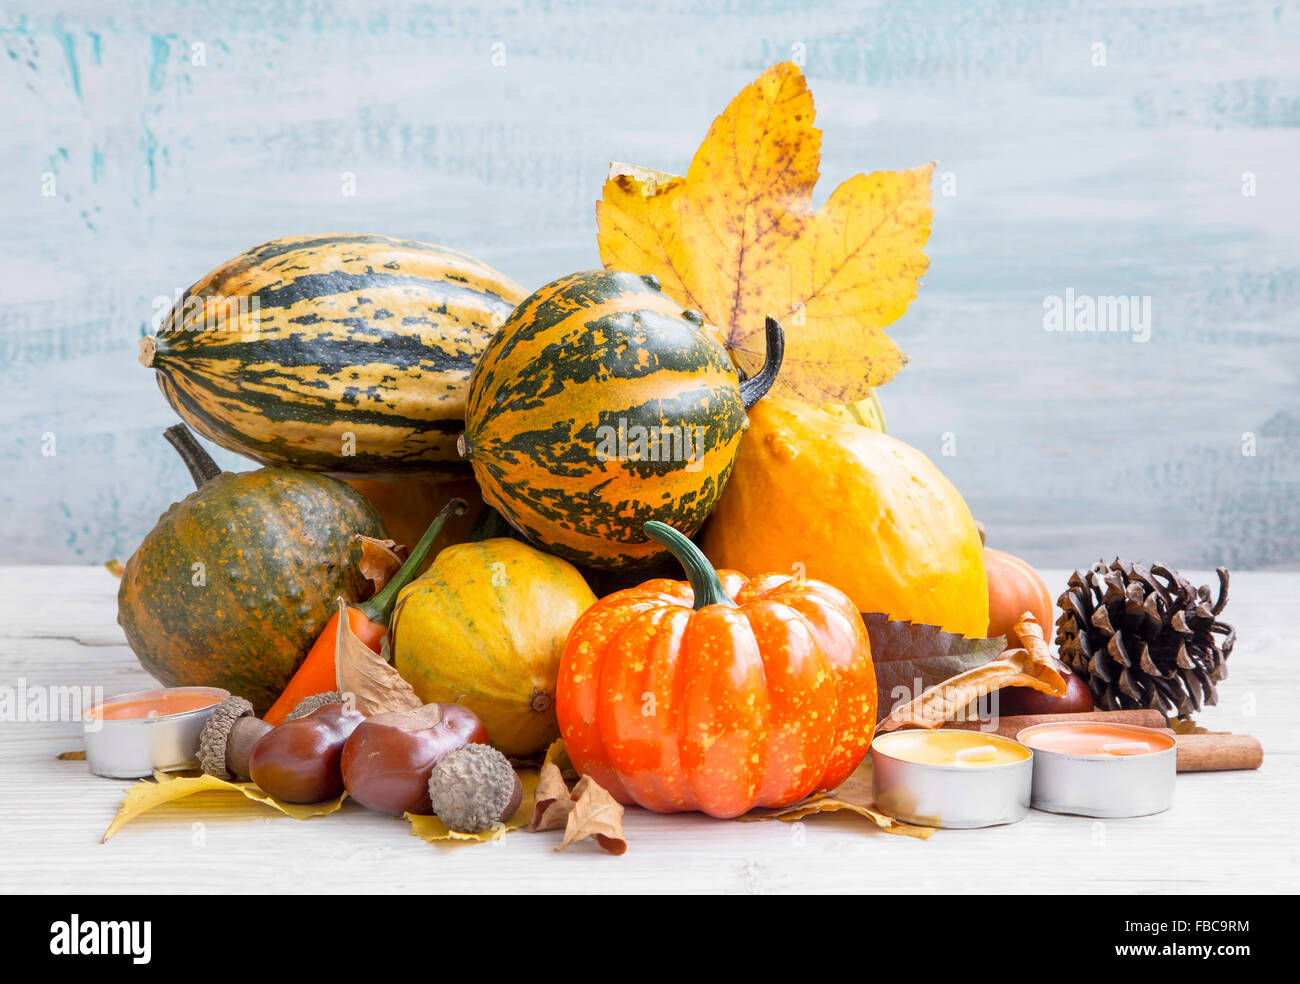 Variety of Autumn Pumpkins Assortment on Painted Wood - Stock Image